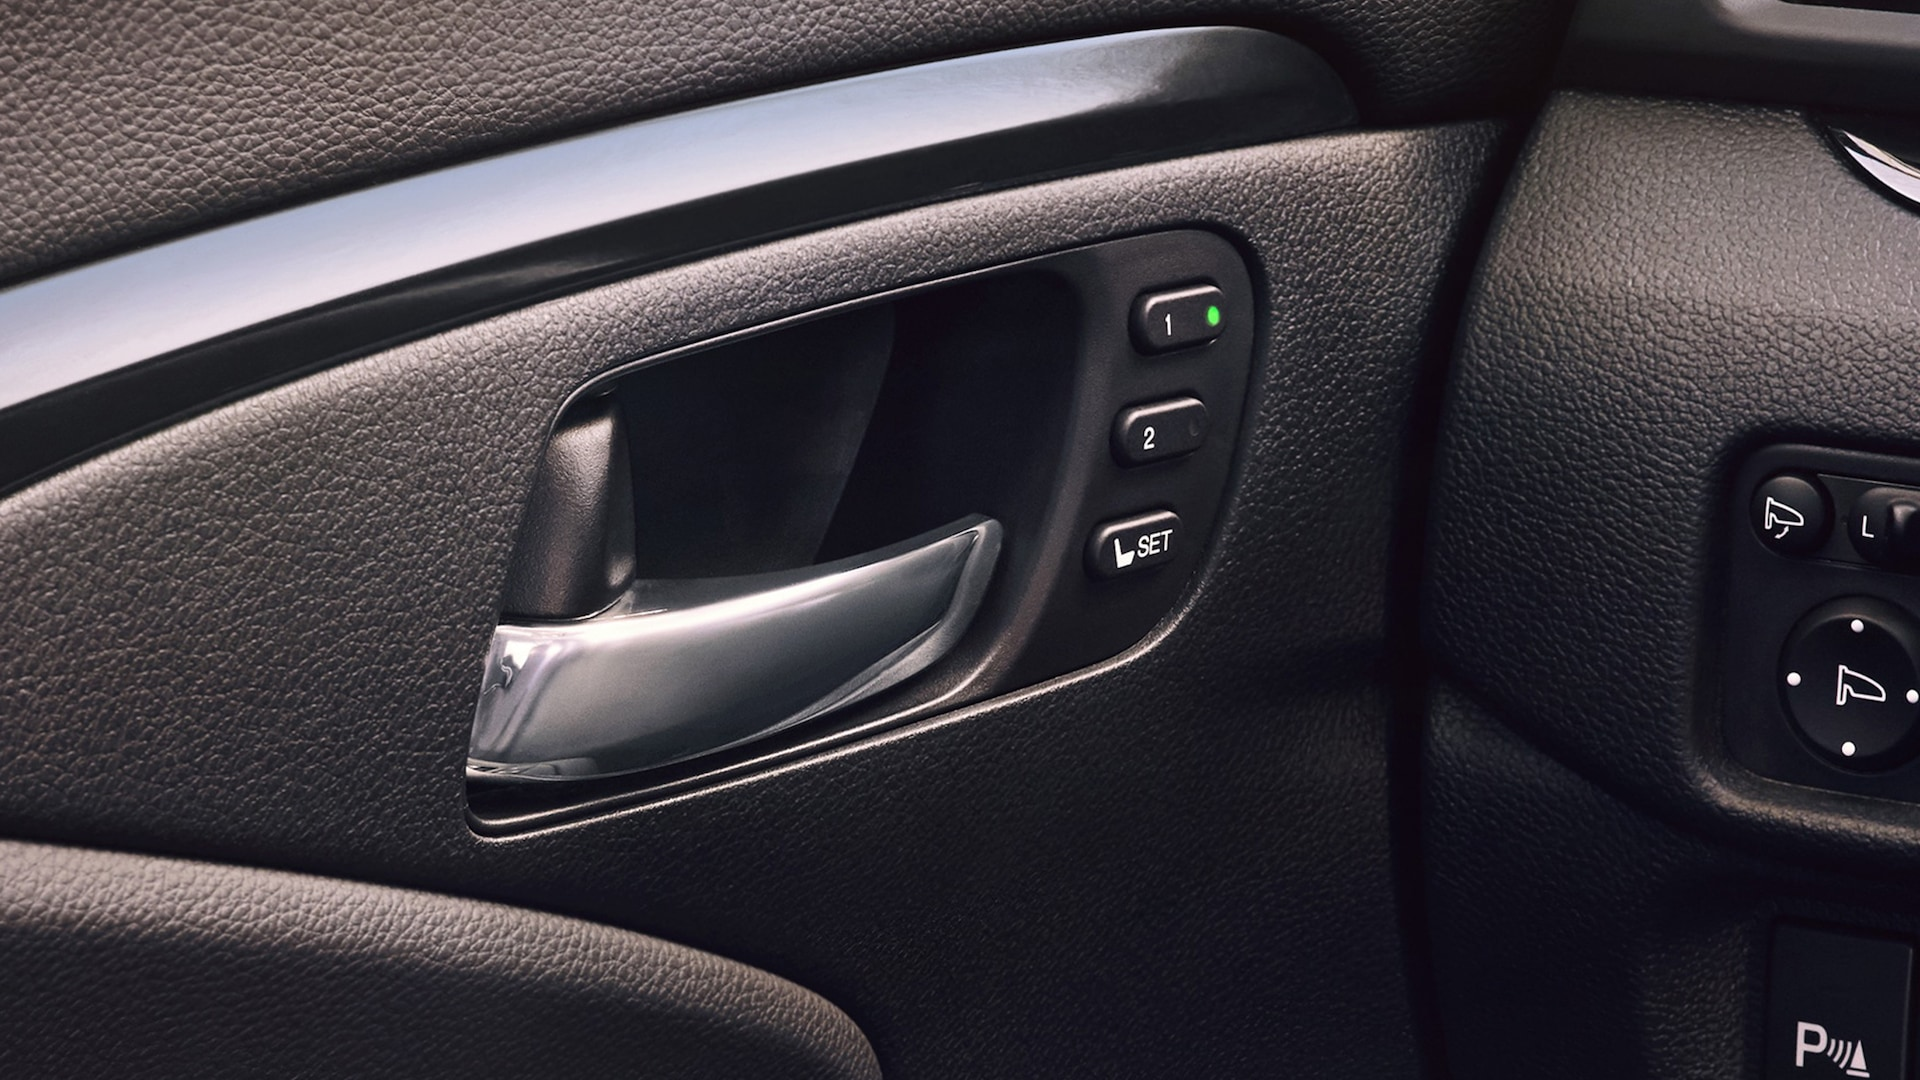 Driver's seat memory setting detail on the 2020 Honda Passport Elite with Black Leather interior.